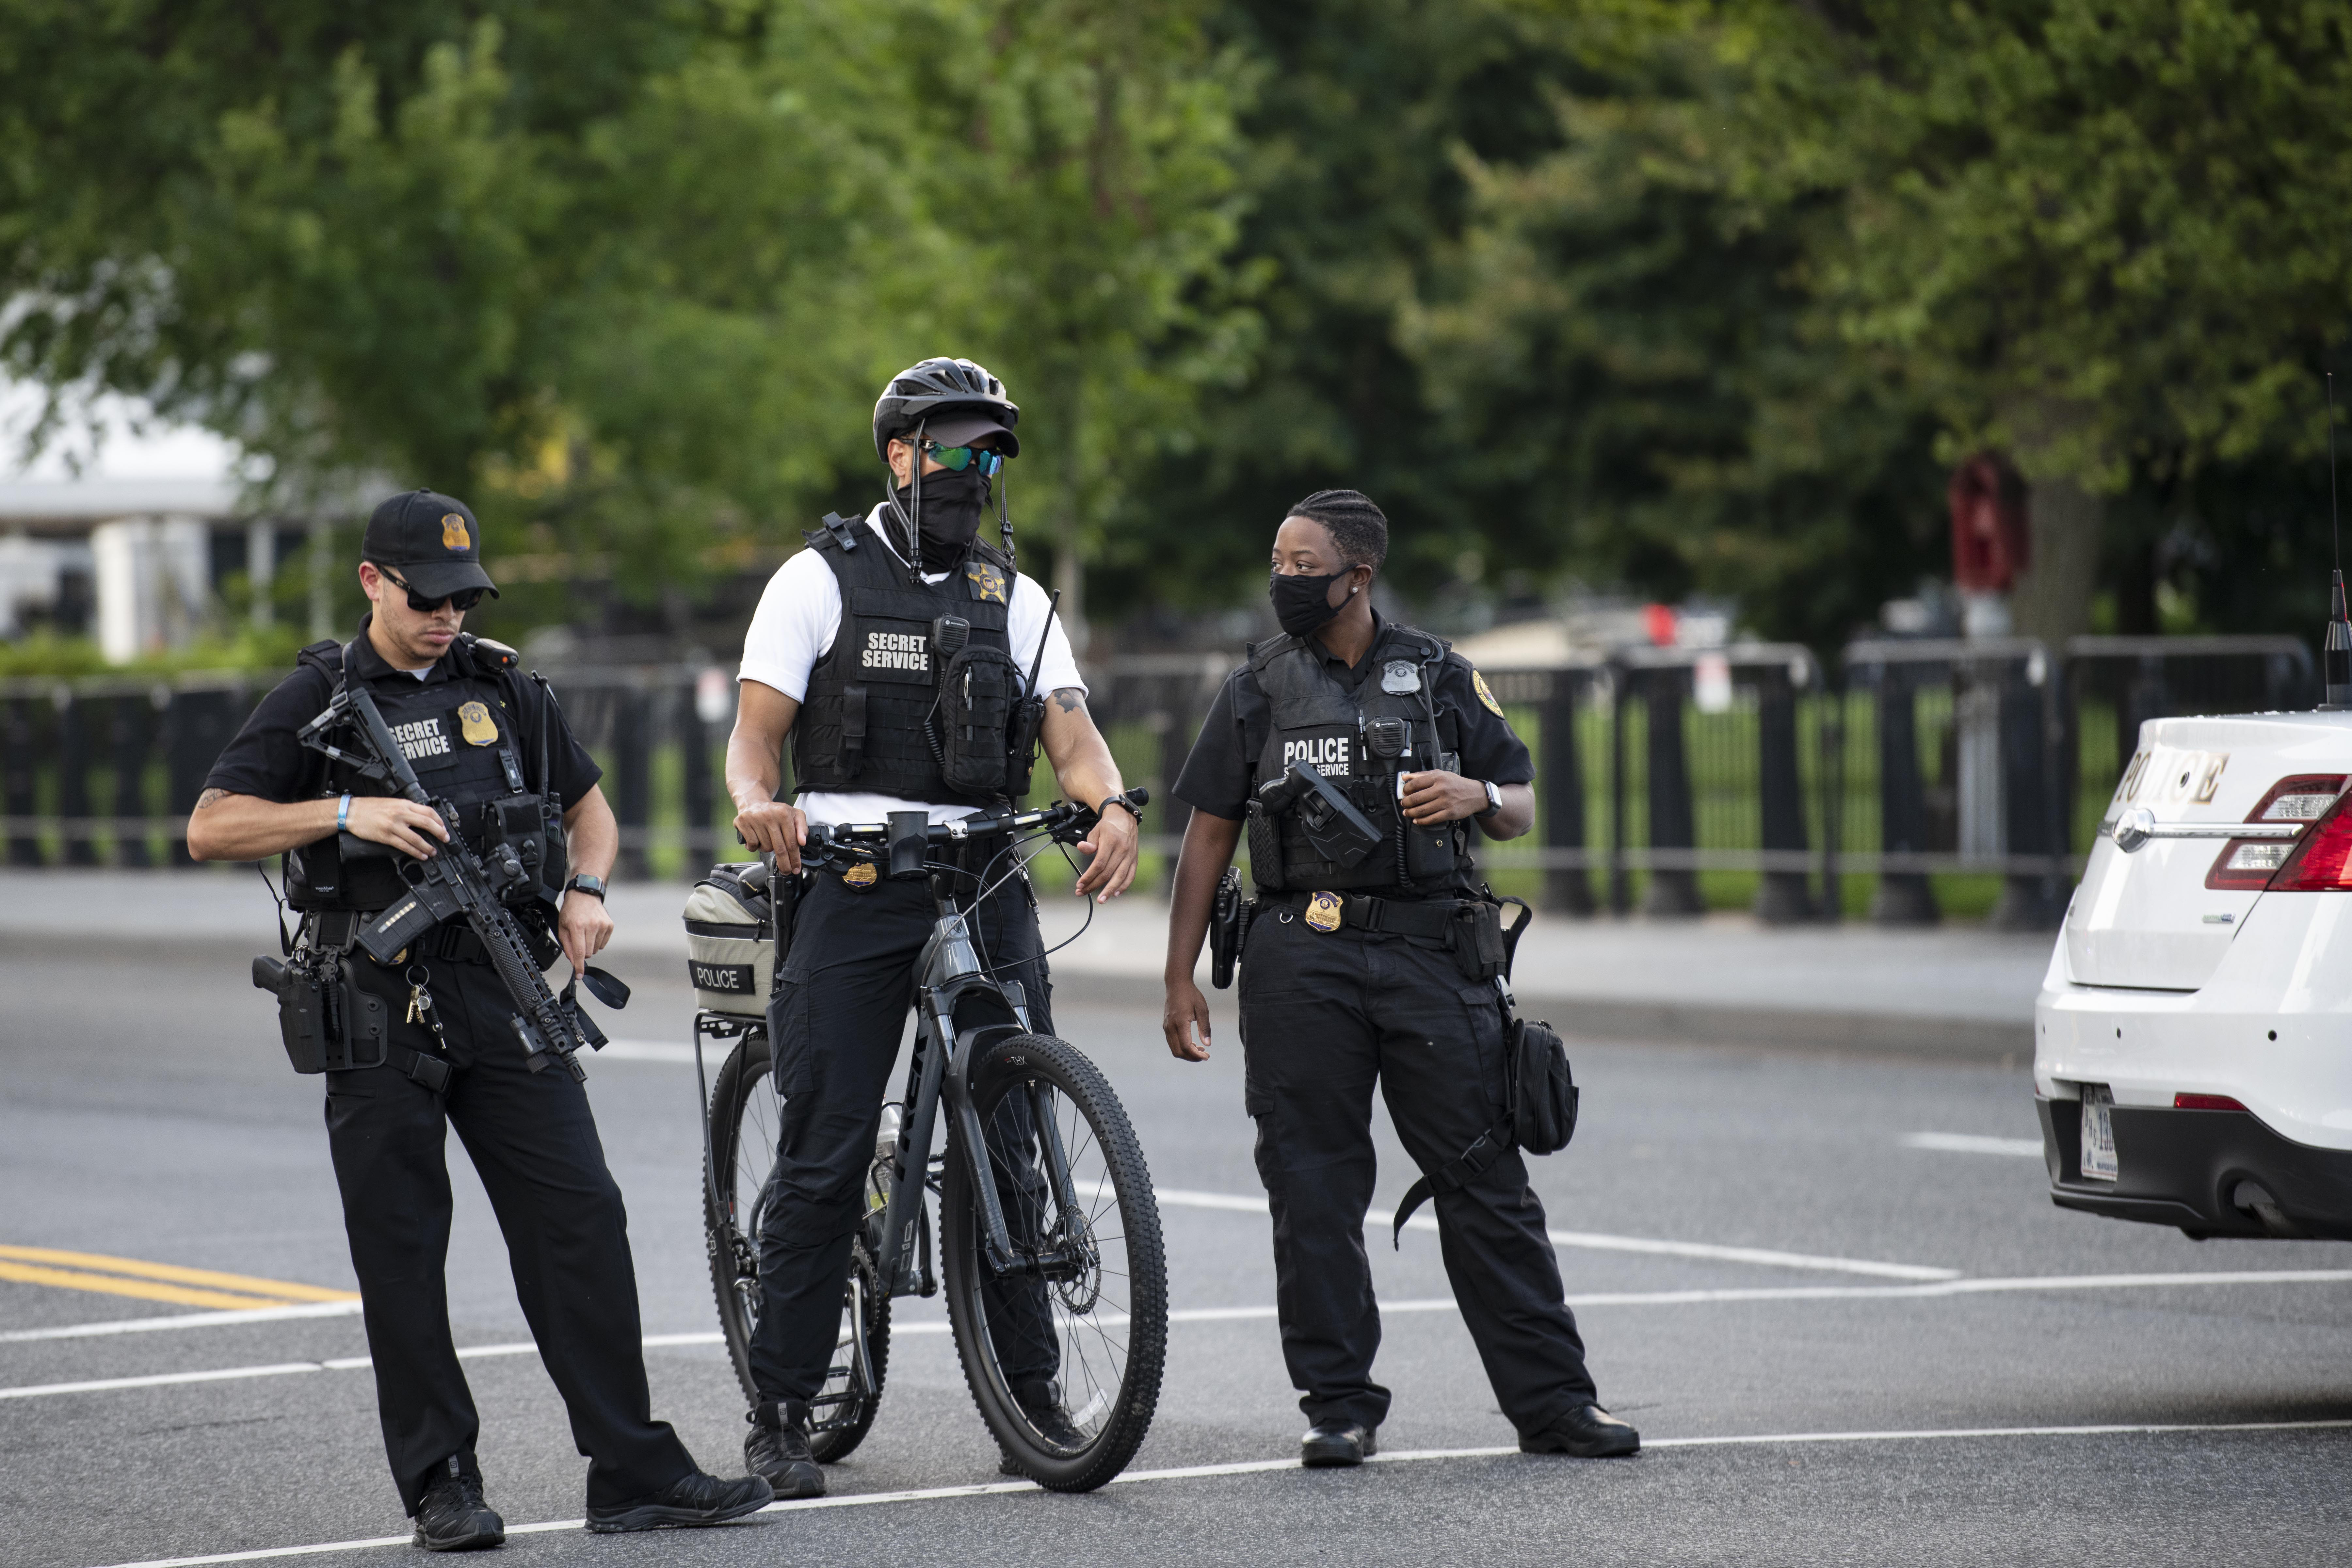 WASHINGTON, D.C., Aug. 10, 2020 -- U.S. Secret Service staff respond to a shooting near the White House in Washington, D.C., the United States, Aug. 10, 2020. U.S. President Donald Trump on Monday afternoon was temporarily escorted by the Secret Service away from an ongoing coronavirus briefing after a shooting was reported outside the White House.(Photo by Liu Jie/Xinhua via Getty) (Xinhua/Liu Jie via Getty Images)